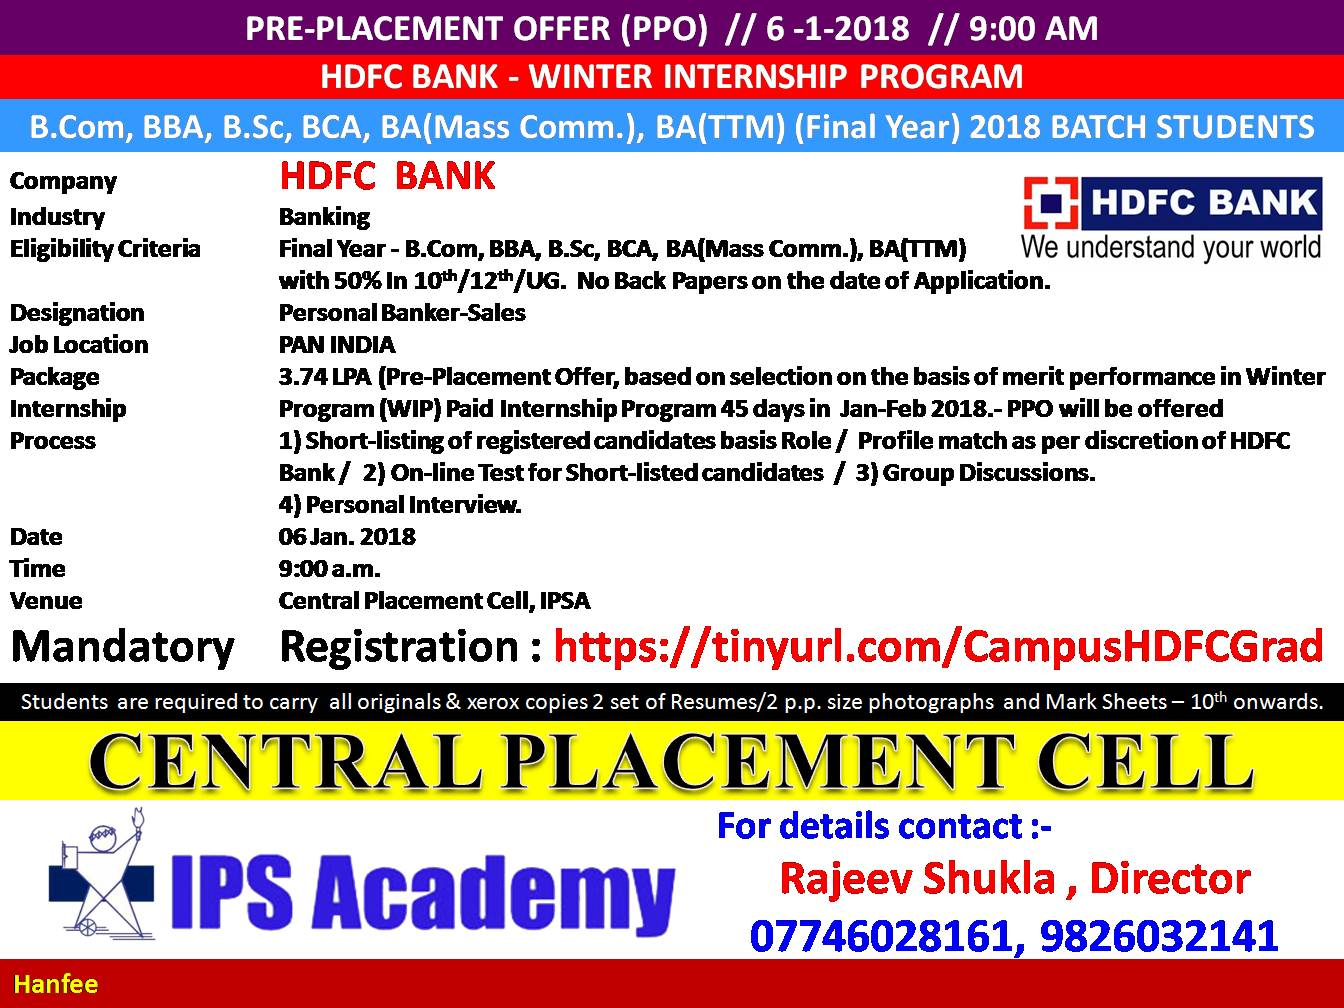 Central Placement Cell: HDFC Bank Campus Drive MBA , PGDM 2018 Batch students